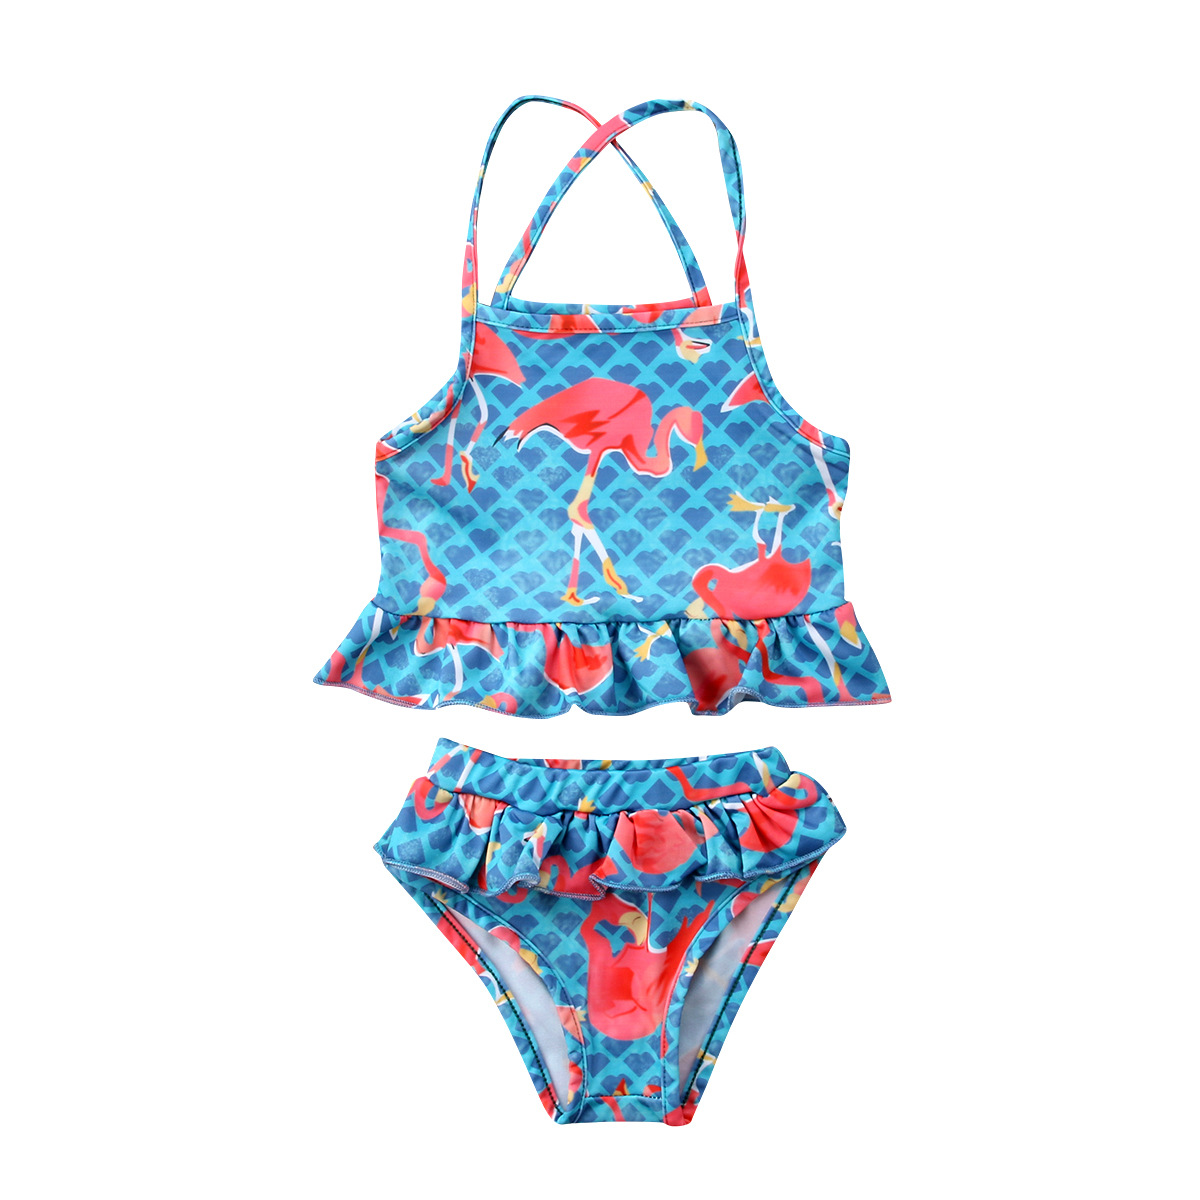 Summer New Style KID'S Swimwear Flamingo Printed Swimsuit Girls Swimsuit With Shoulder Straps Baby Bathing Suit 2 Pieces